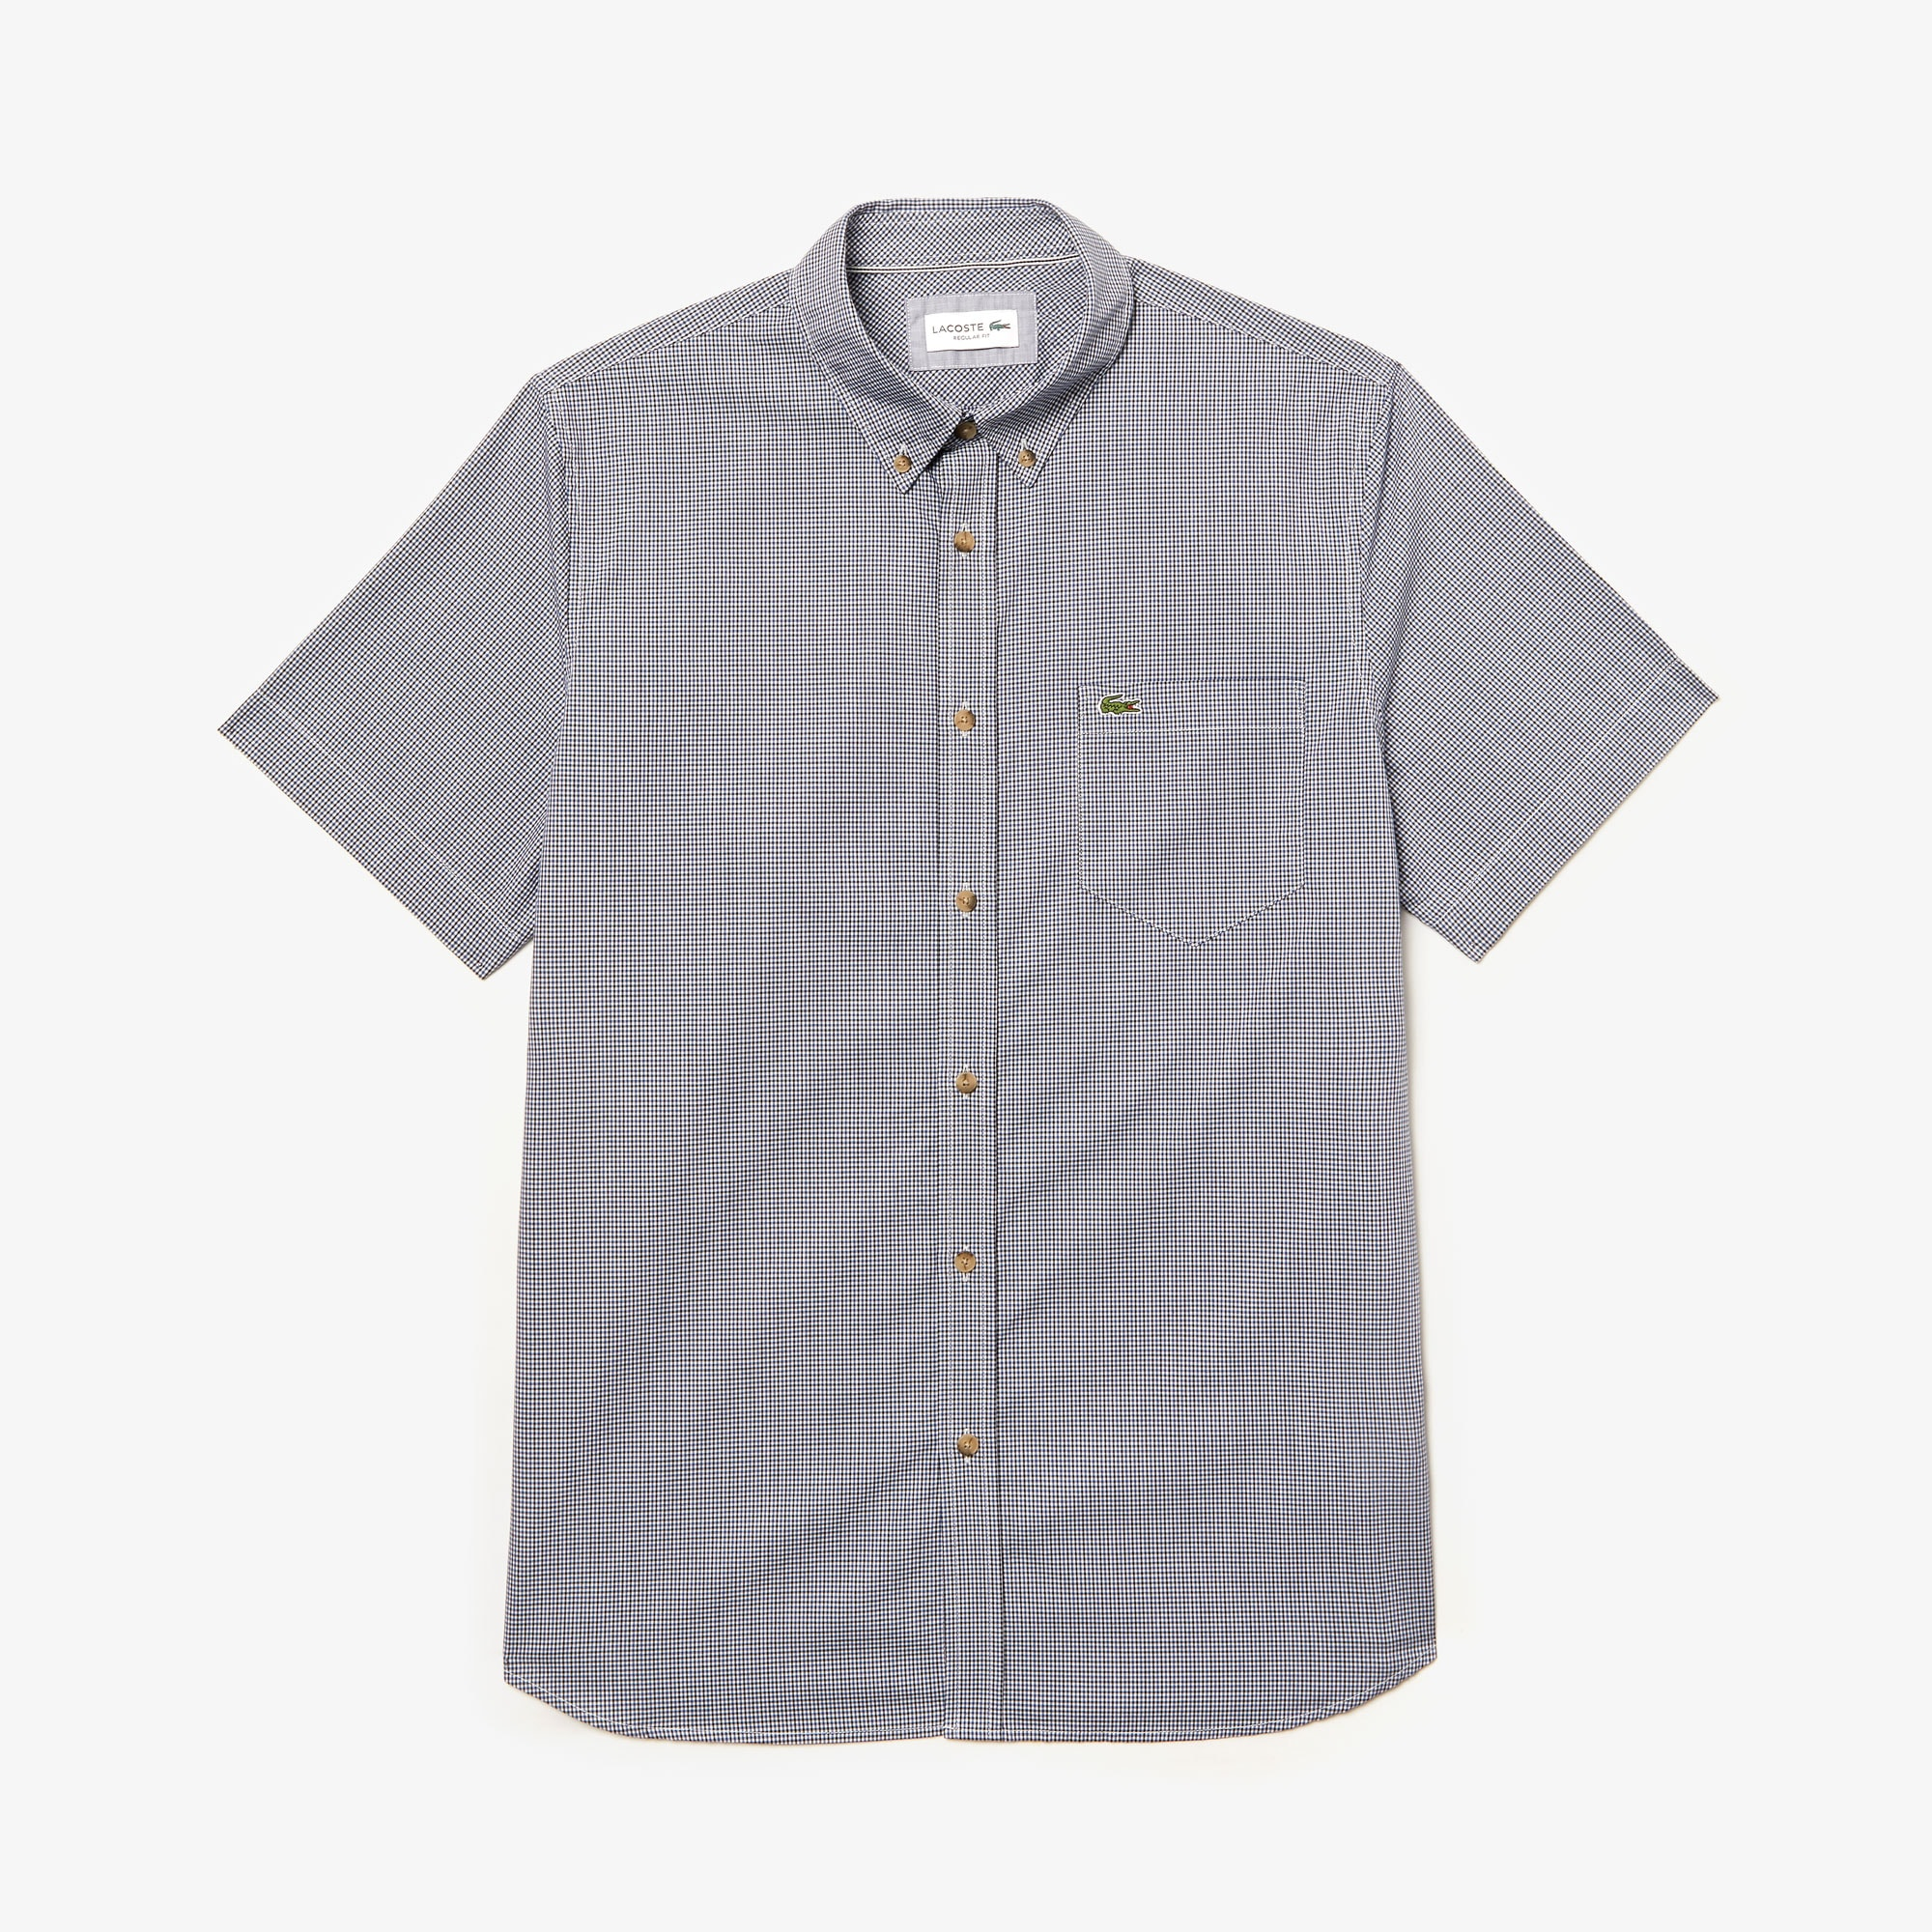 Men's Regular Fit Gingham Cotton Shirt